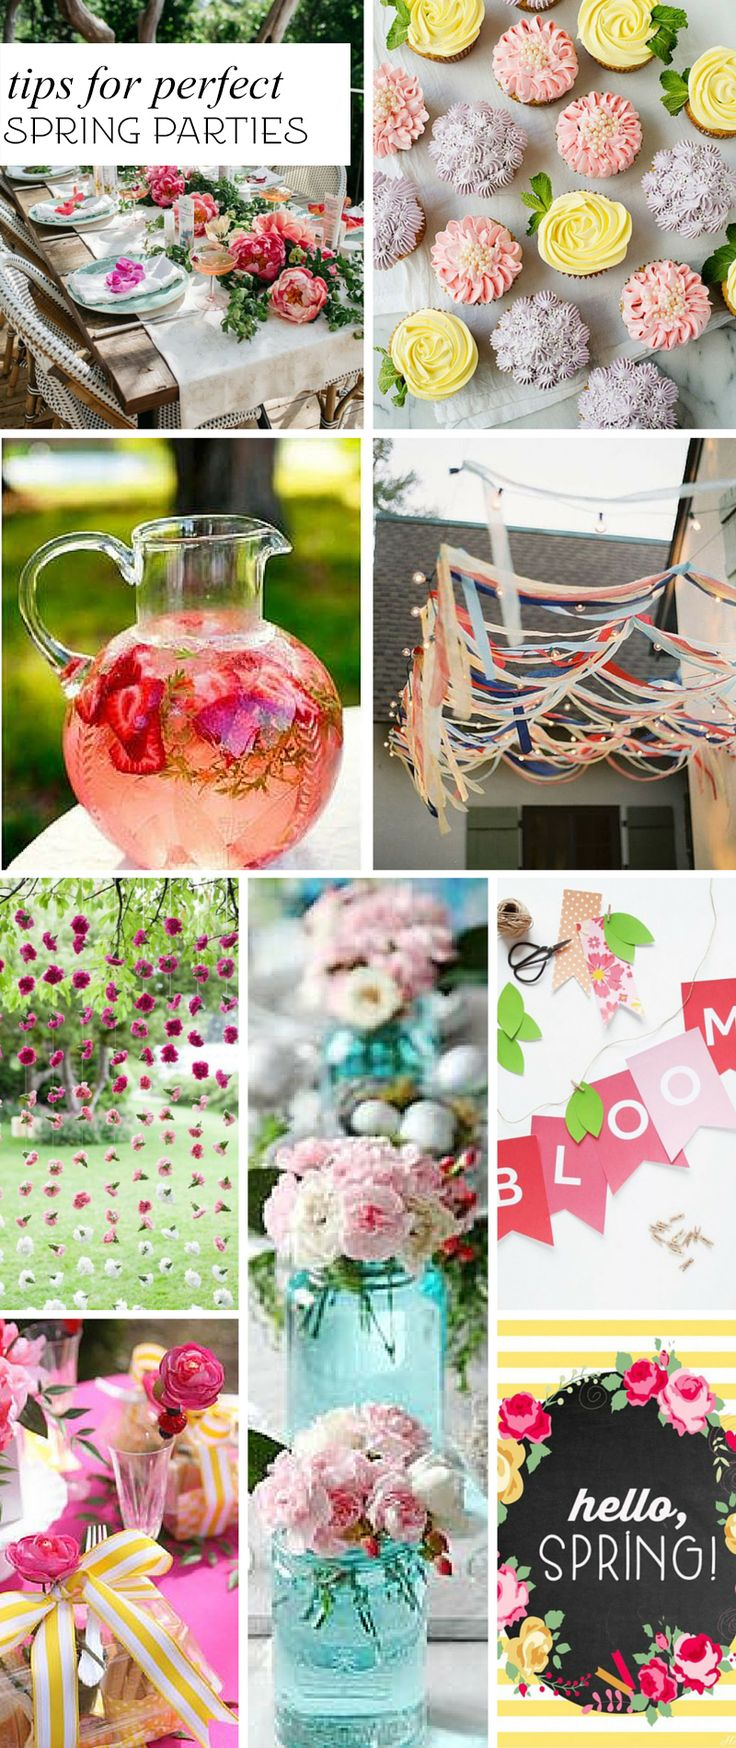 Tips for hosting fabulous spring parties from delicious recipes to free printables too!